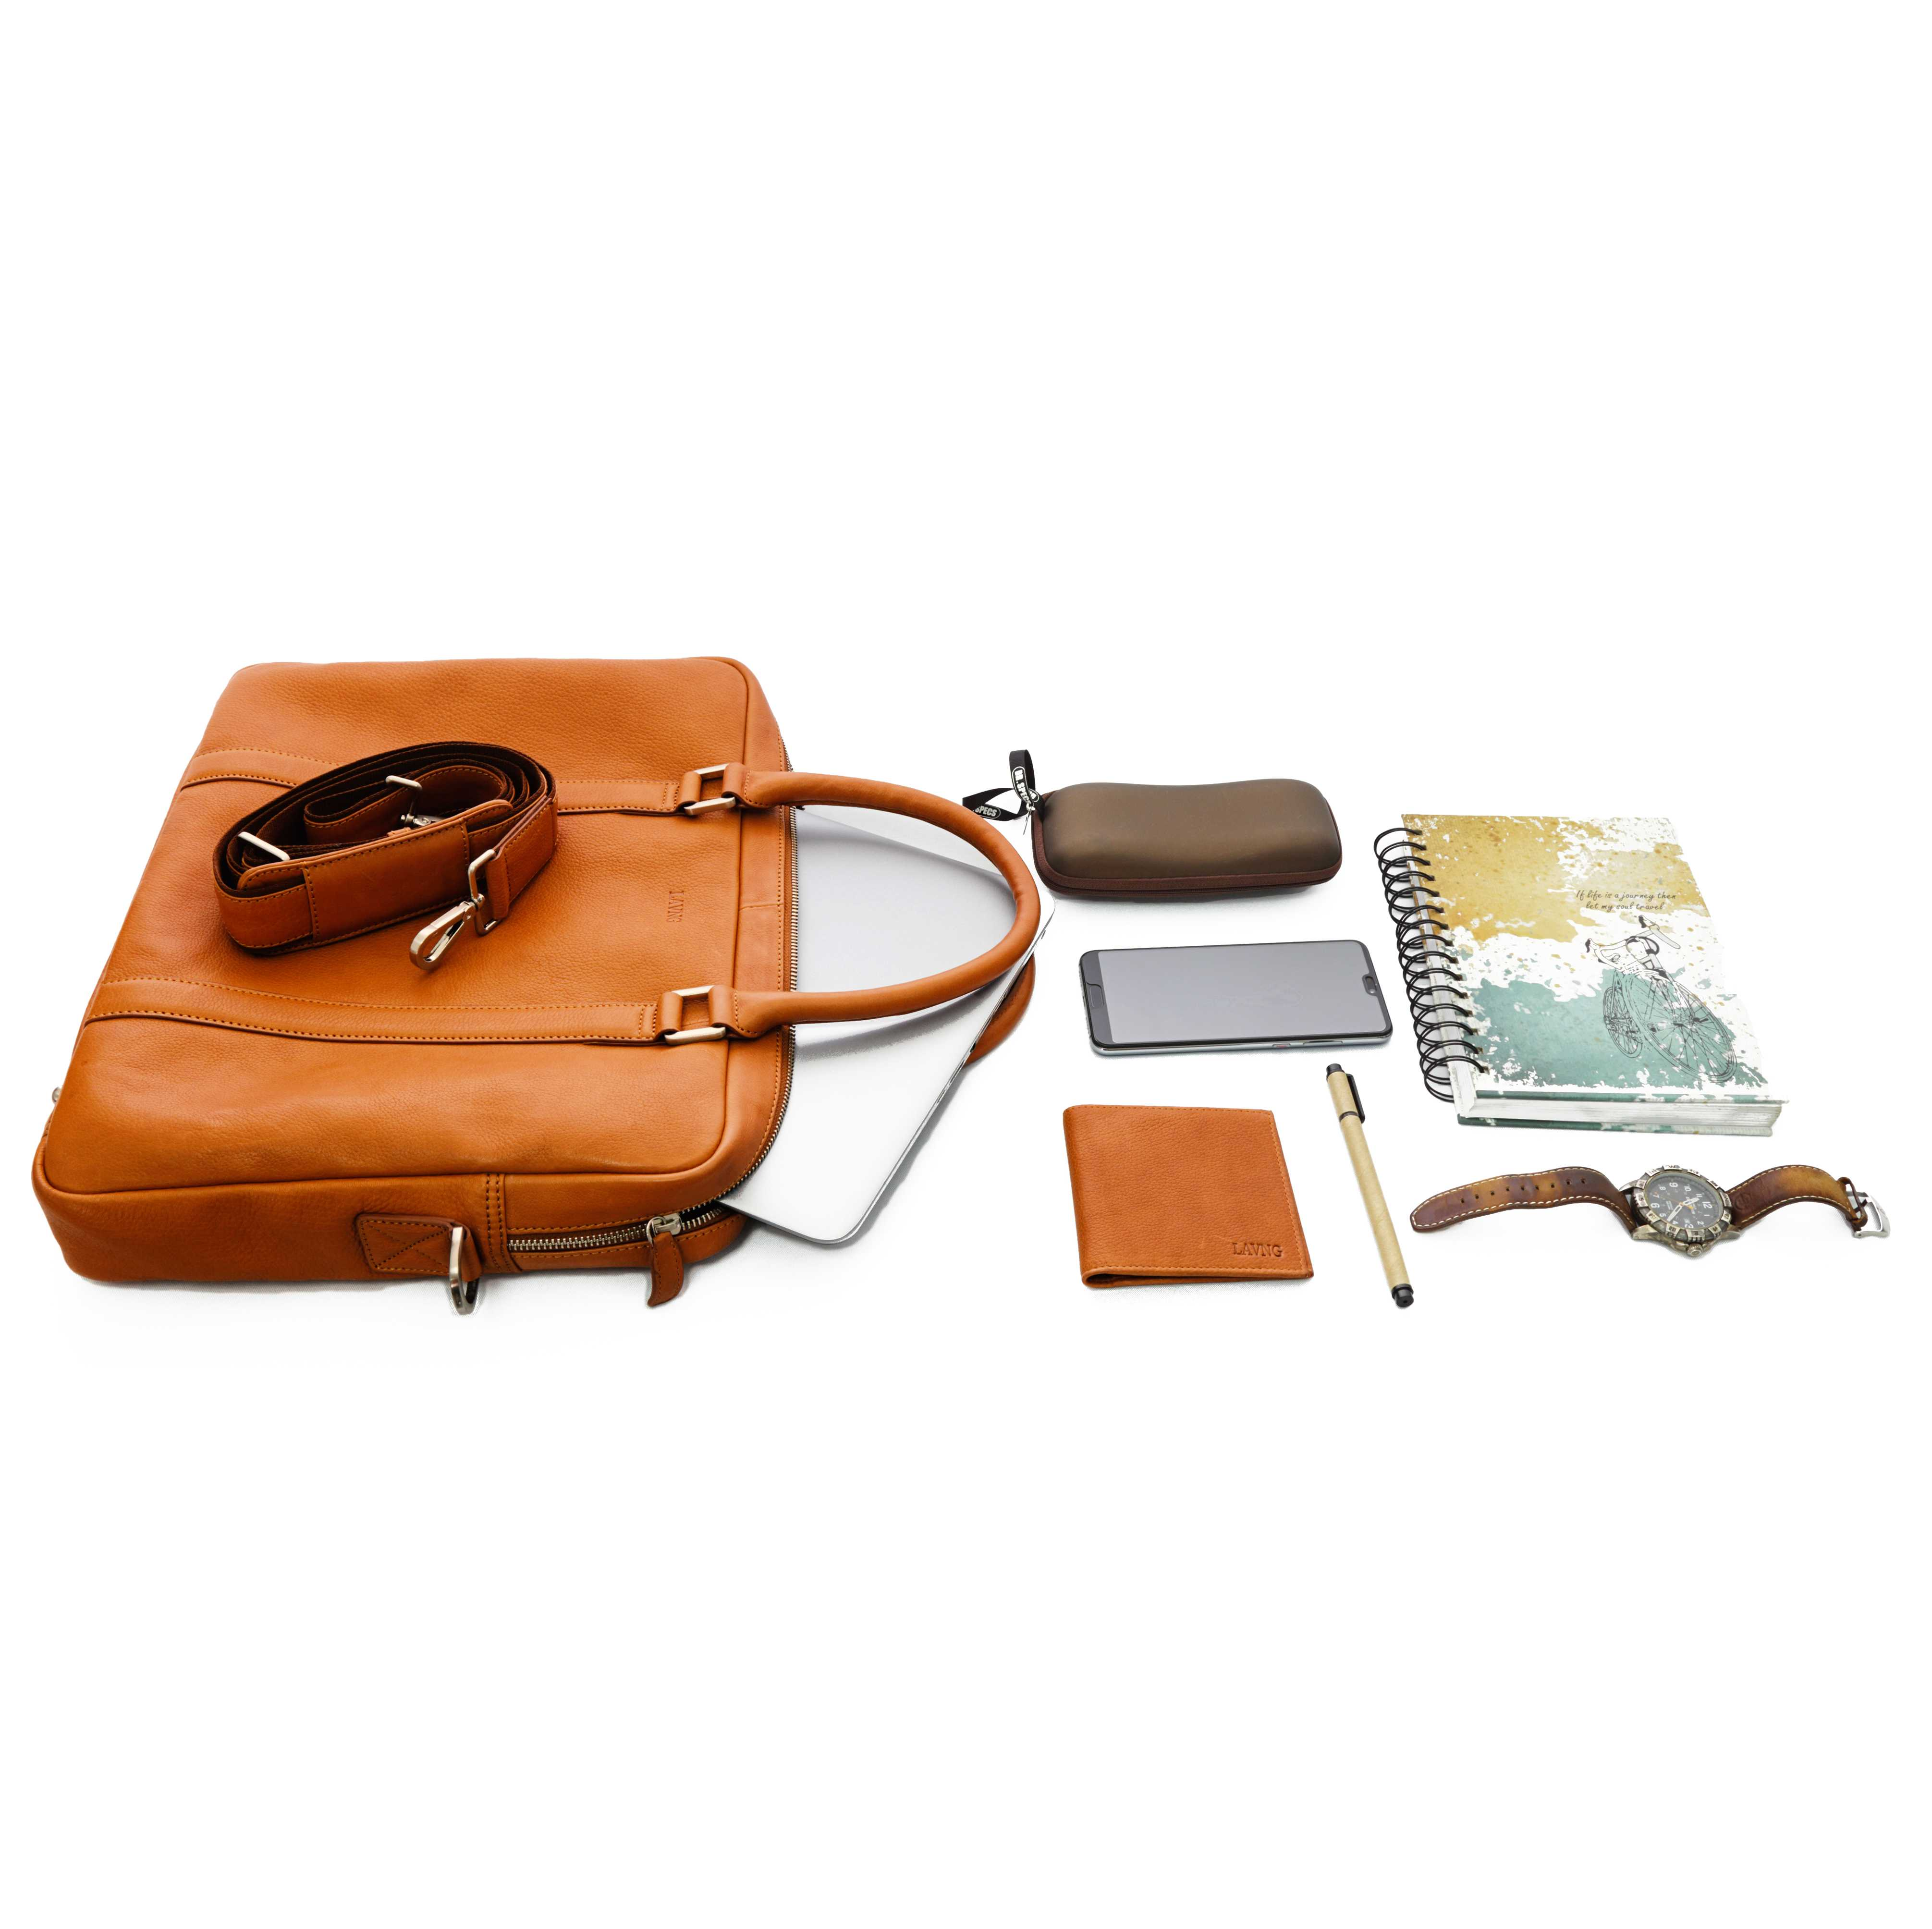 Soft Leather Briefcase - Tan